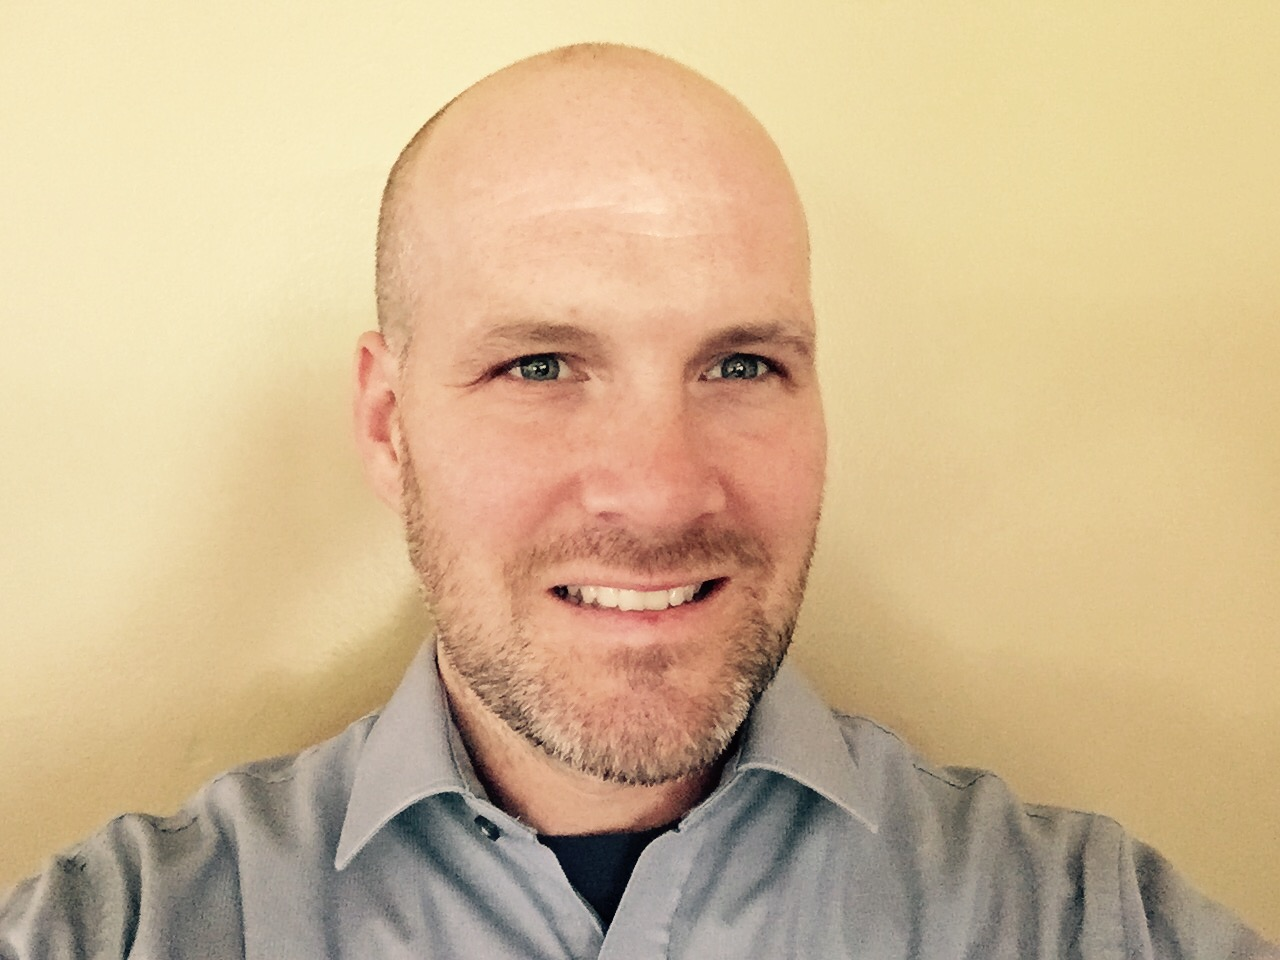 Milwaukee Pride, Inc. appoints Eric Heinritz executive director